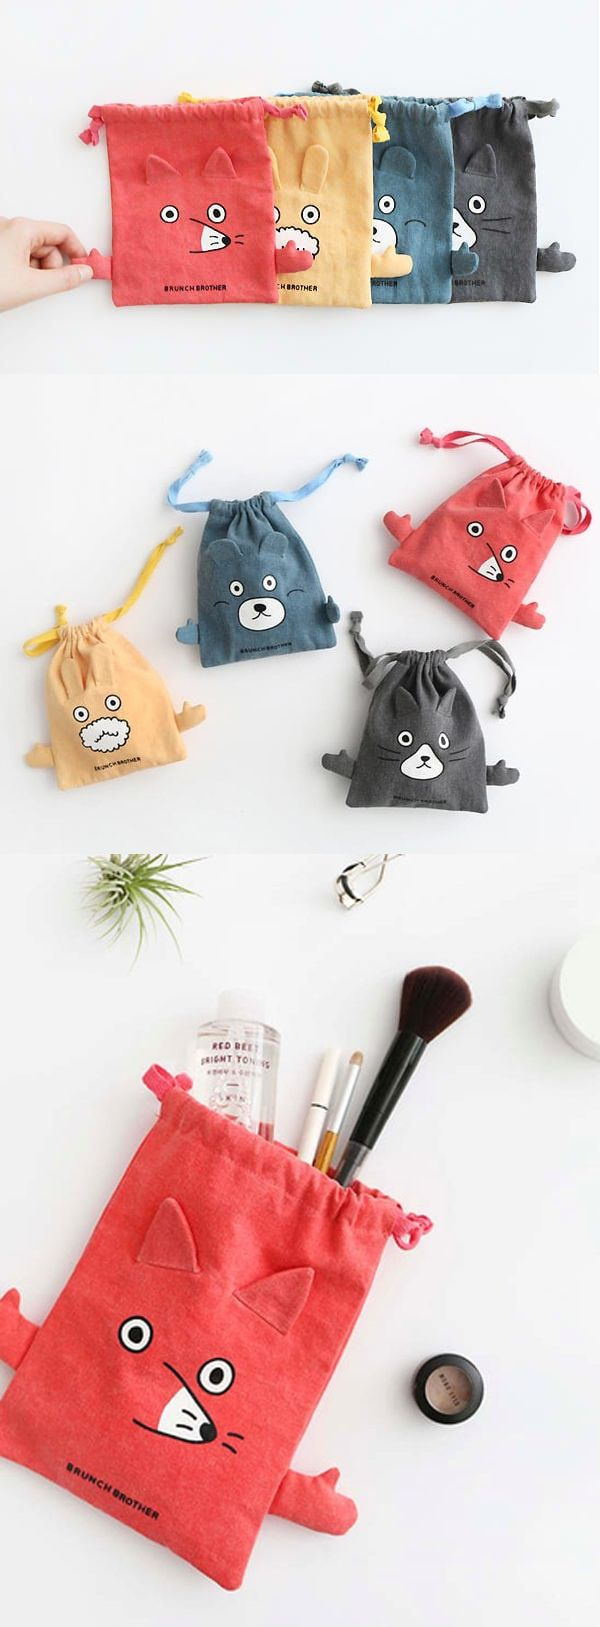 The Brunch Brother Drawstring Pouch is super adorable! This pouch features cute and colorful animal friends with cute arms on both sides! The pouch is perfect for carrying your items, and the drawstrings make it easy to store and take them out of the pouch!